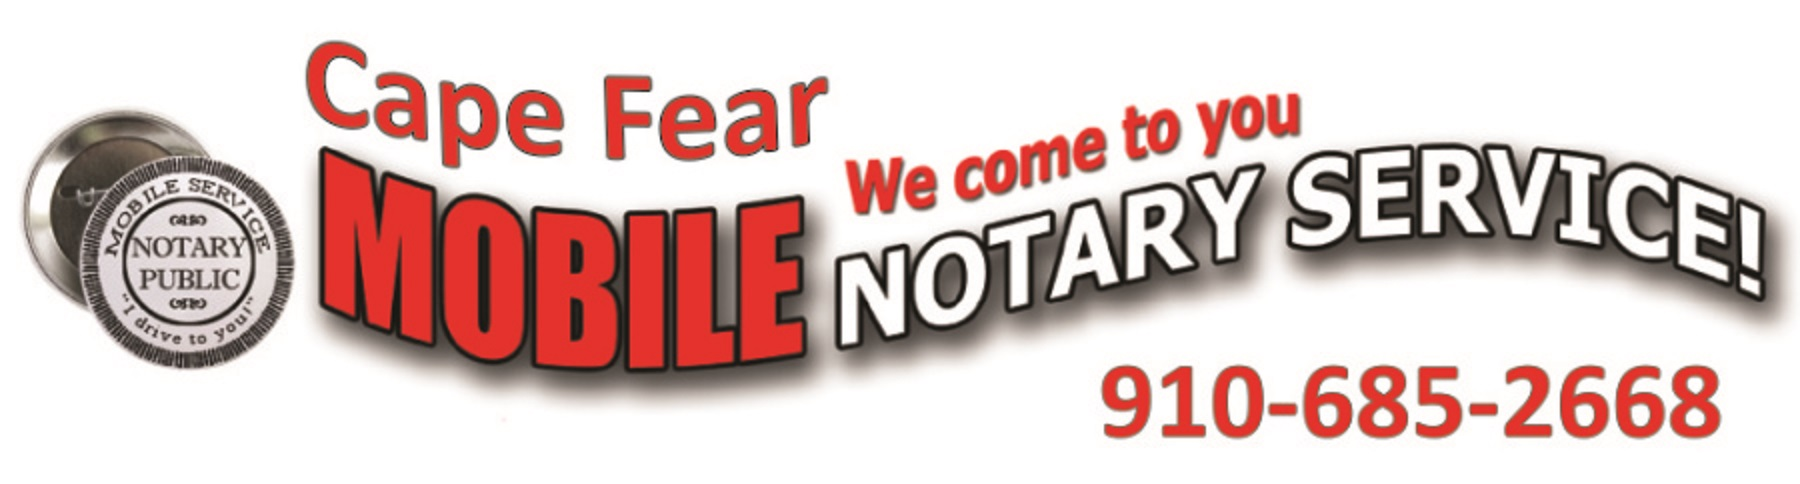 Cape Fear Mobile Notary We Provide Mobile Notary Services For Any And All  Legal Documents We